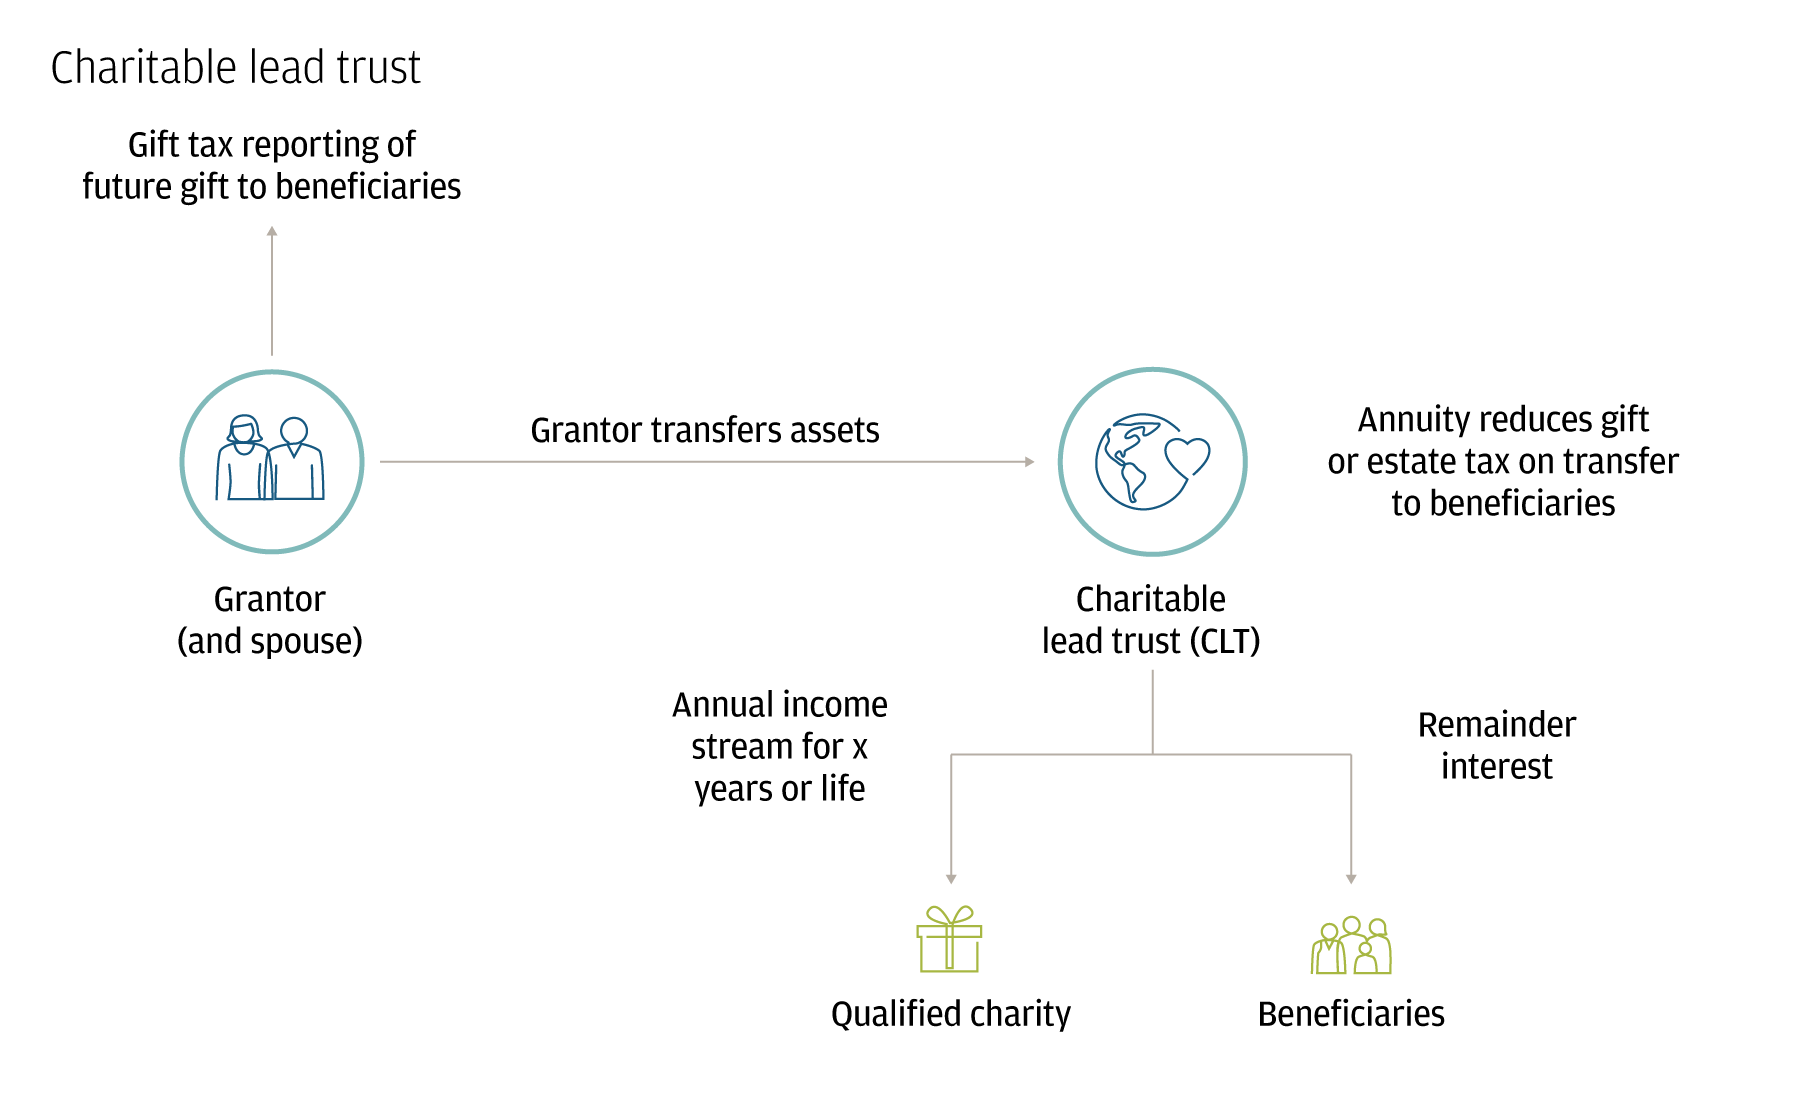 This diagram illustrates the establishment and workings of a charitable lead trust.